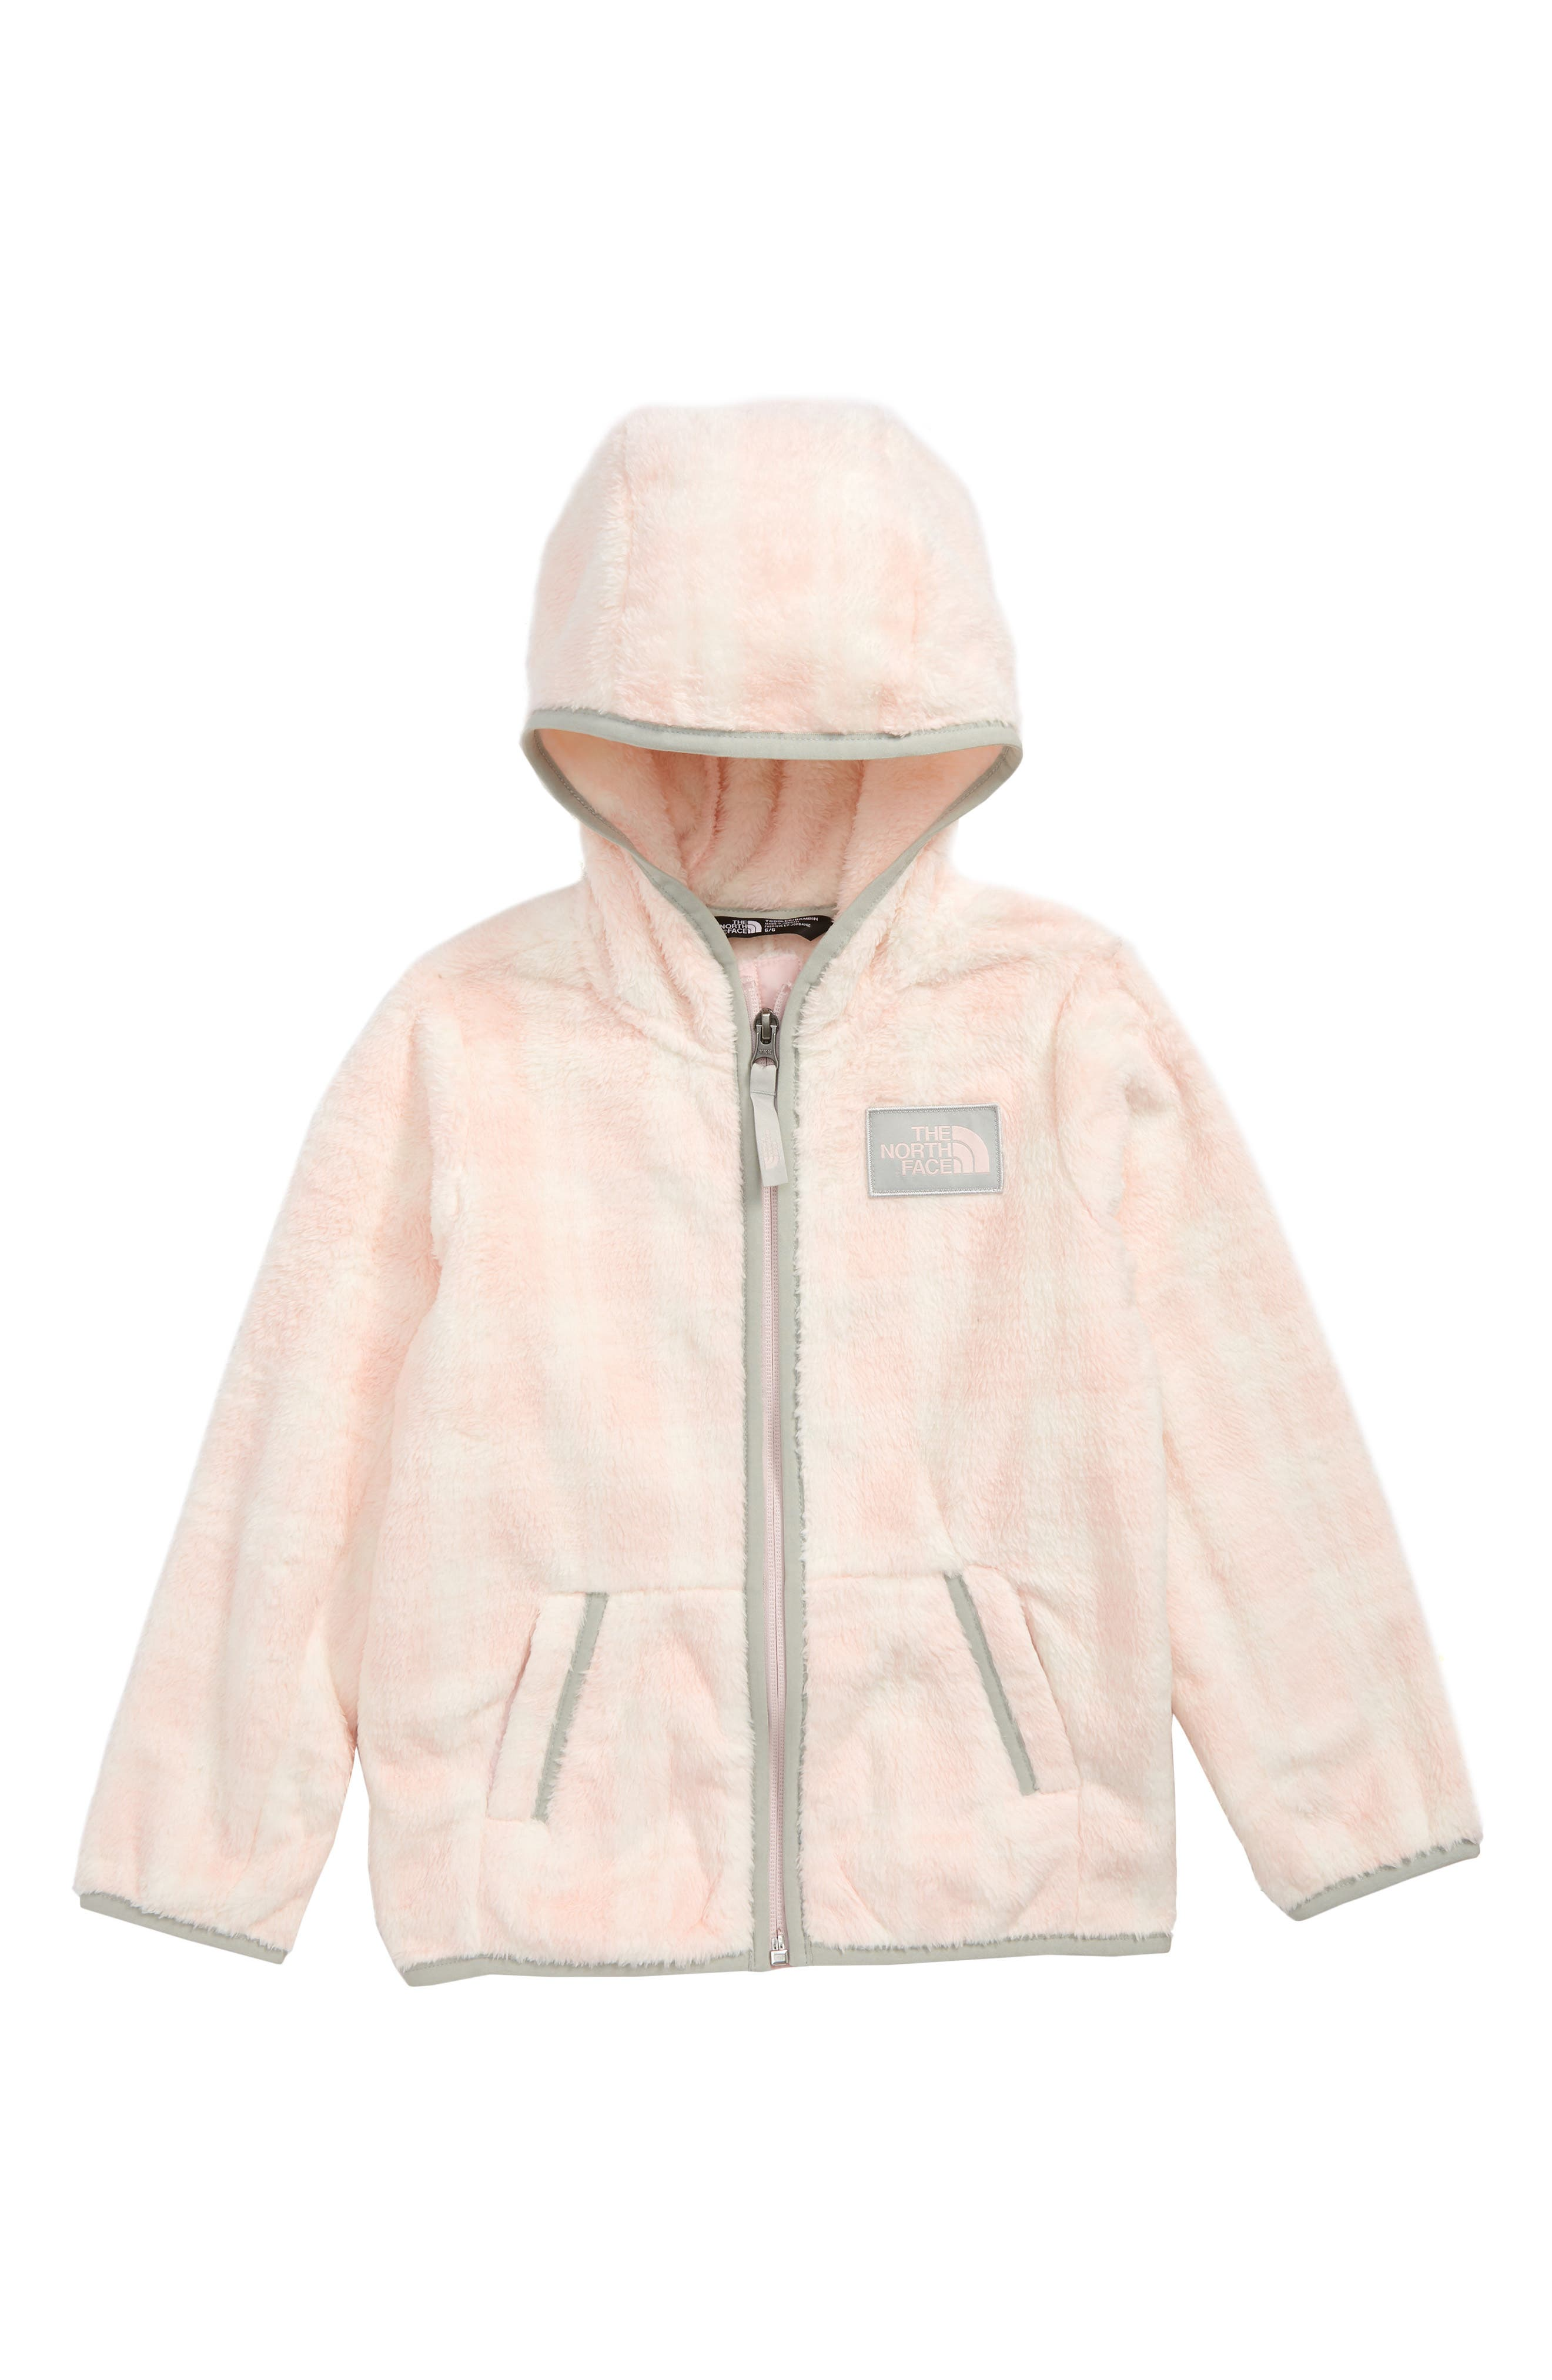 Campshire Full Zip Hoodie,                             Main thumbnail 1, color,                             PURDY PINK PRETTY PLAID PRINT